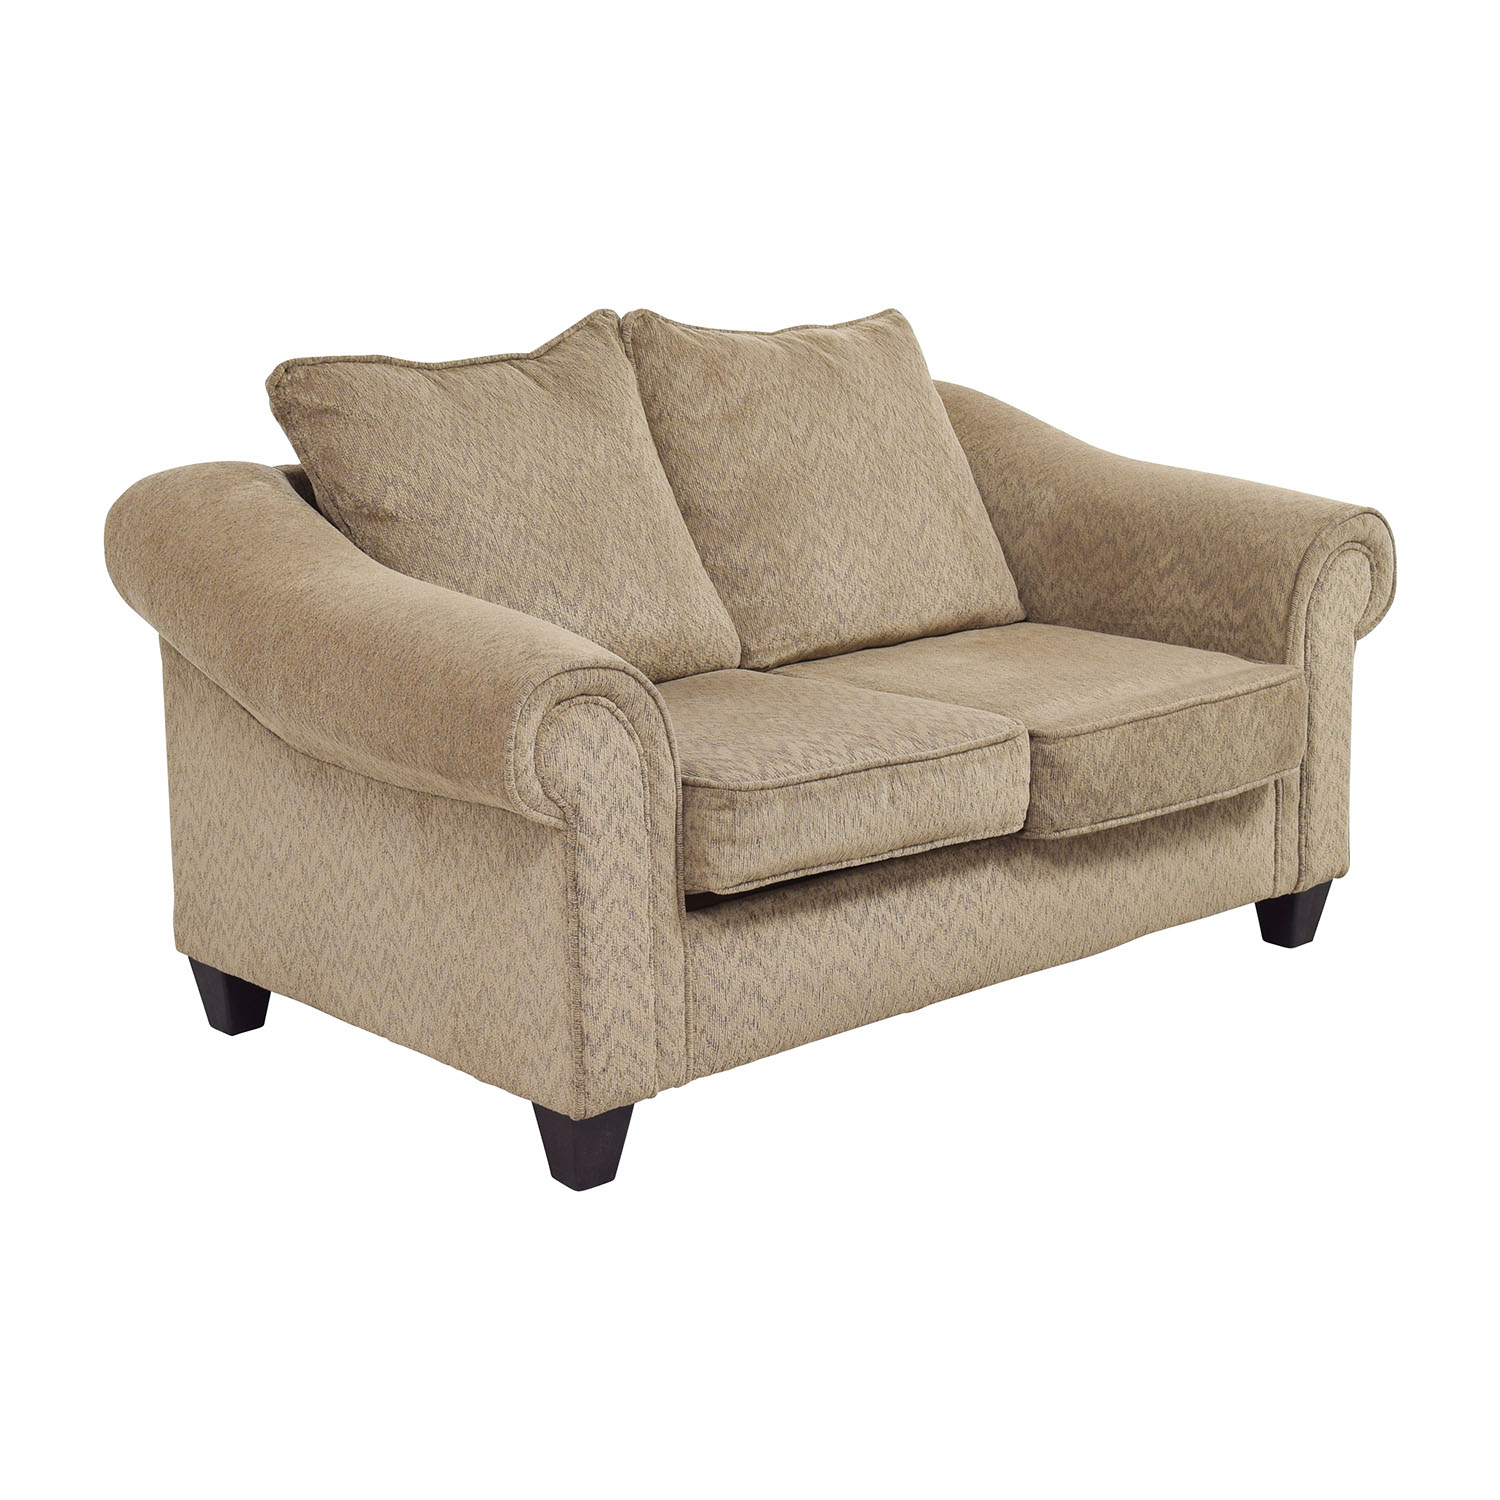 Bobs Furniture Sofas Sofas Beautiful Bobs Furniture Ideas Amazing Thesofa